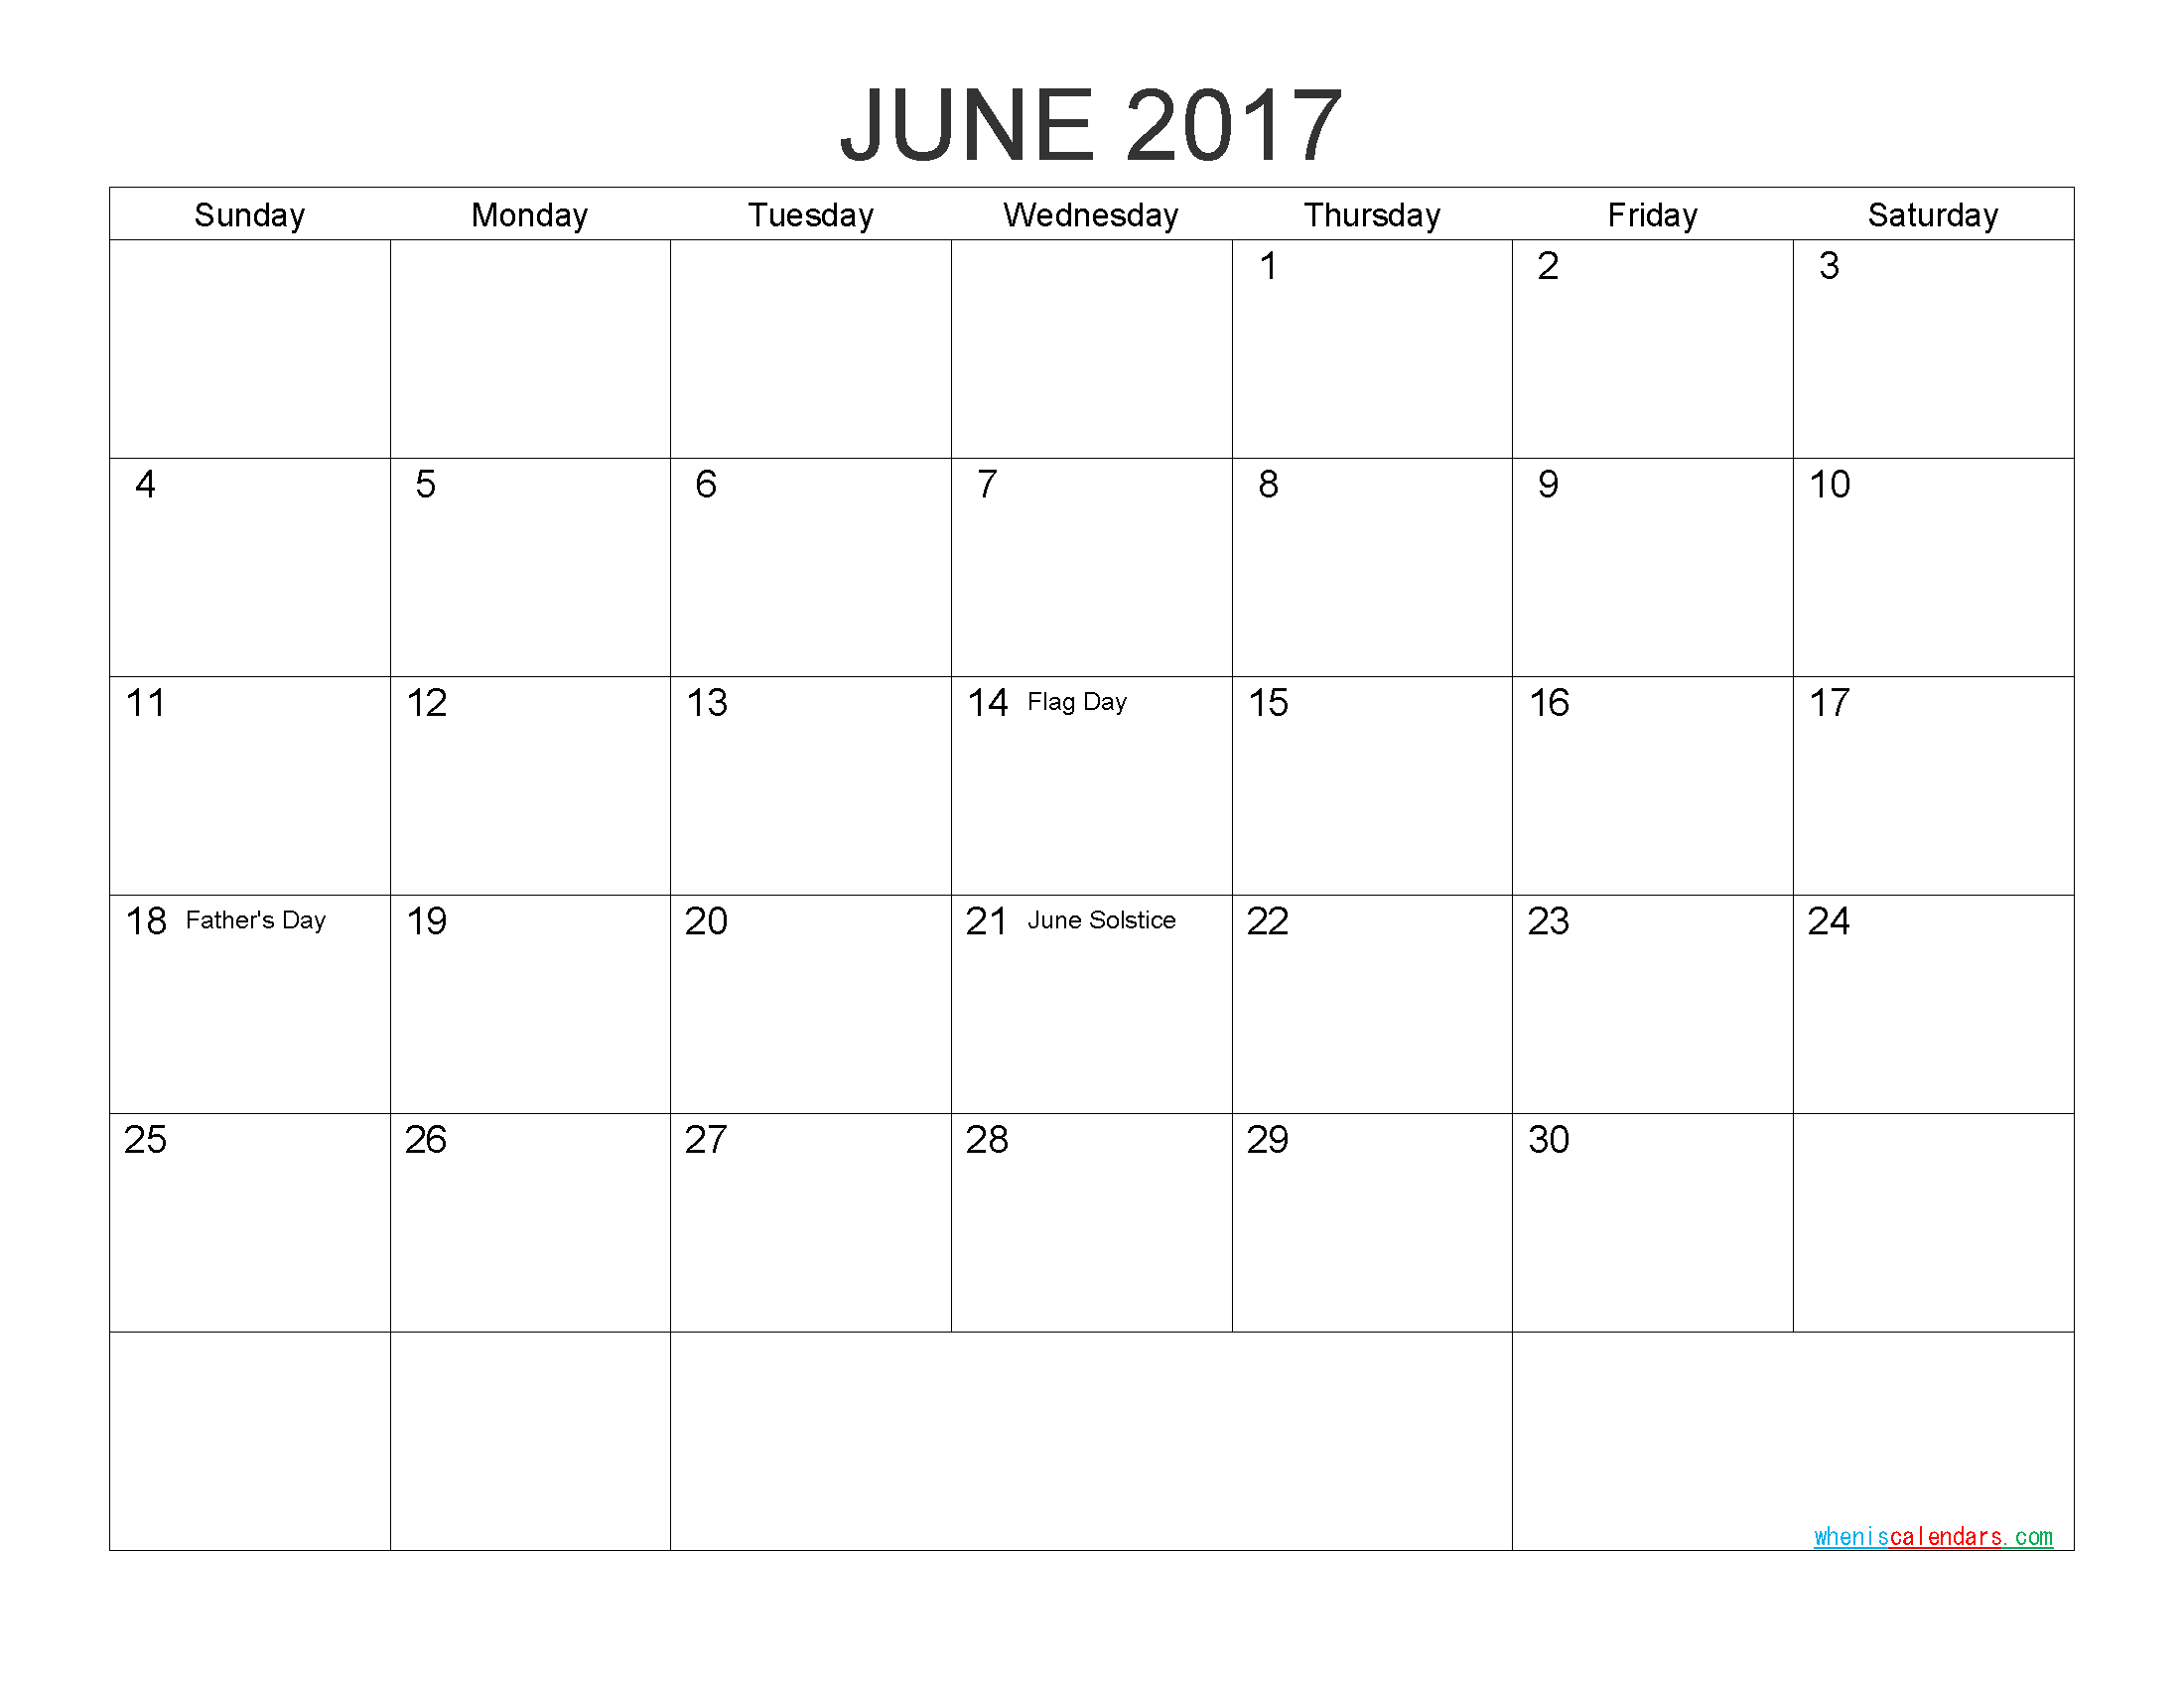 Download Free Calendar June 2017 Printable Calendar with Holidays as PDF and Image